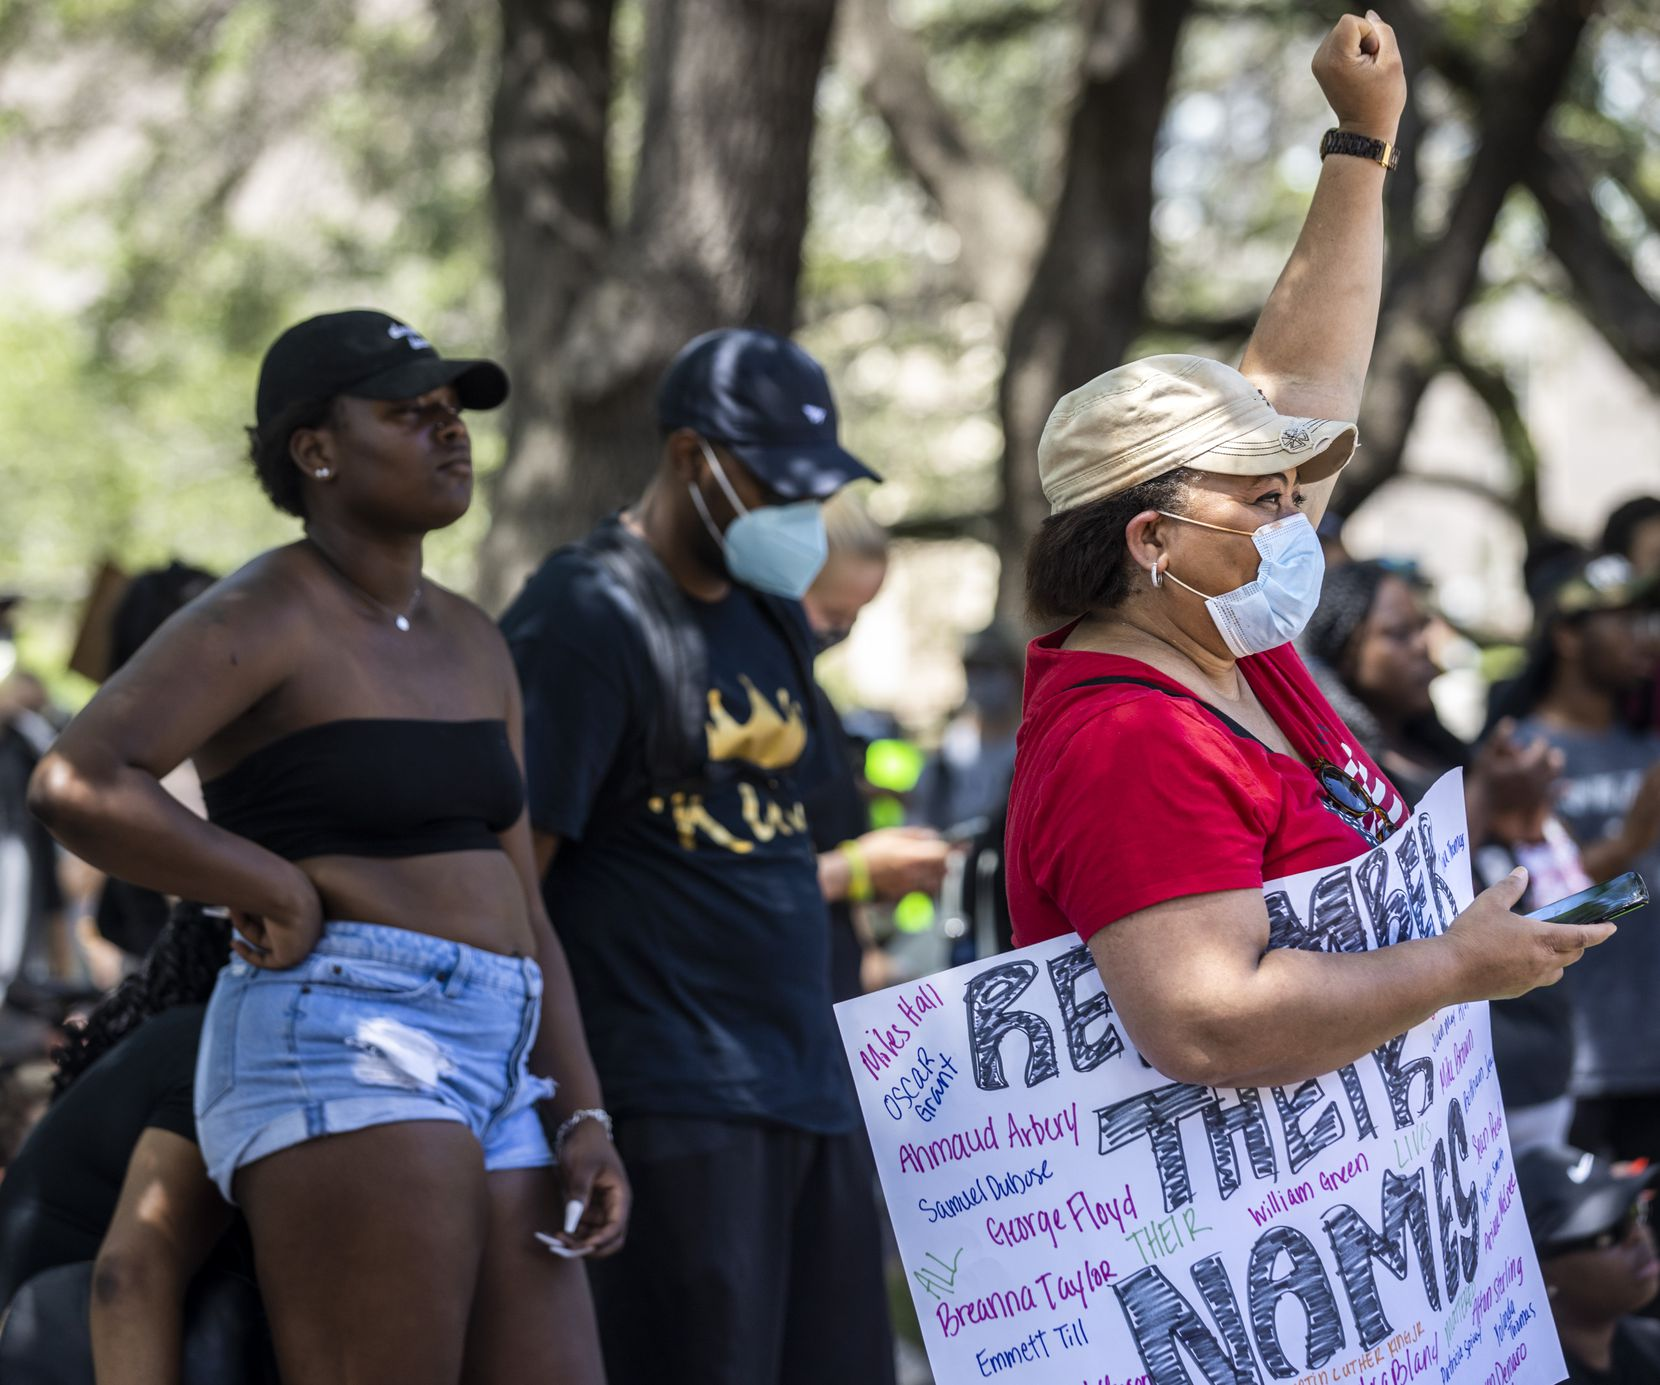 Valerie Fields Hill listens to speakers during a demonstration denouncing police brutality and systemic racism at Dallas City Hall on Friday.